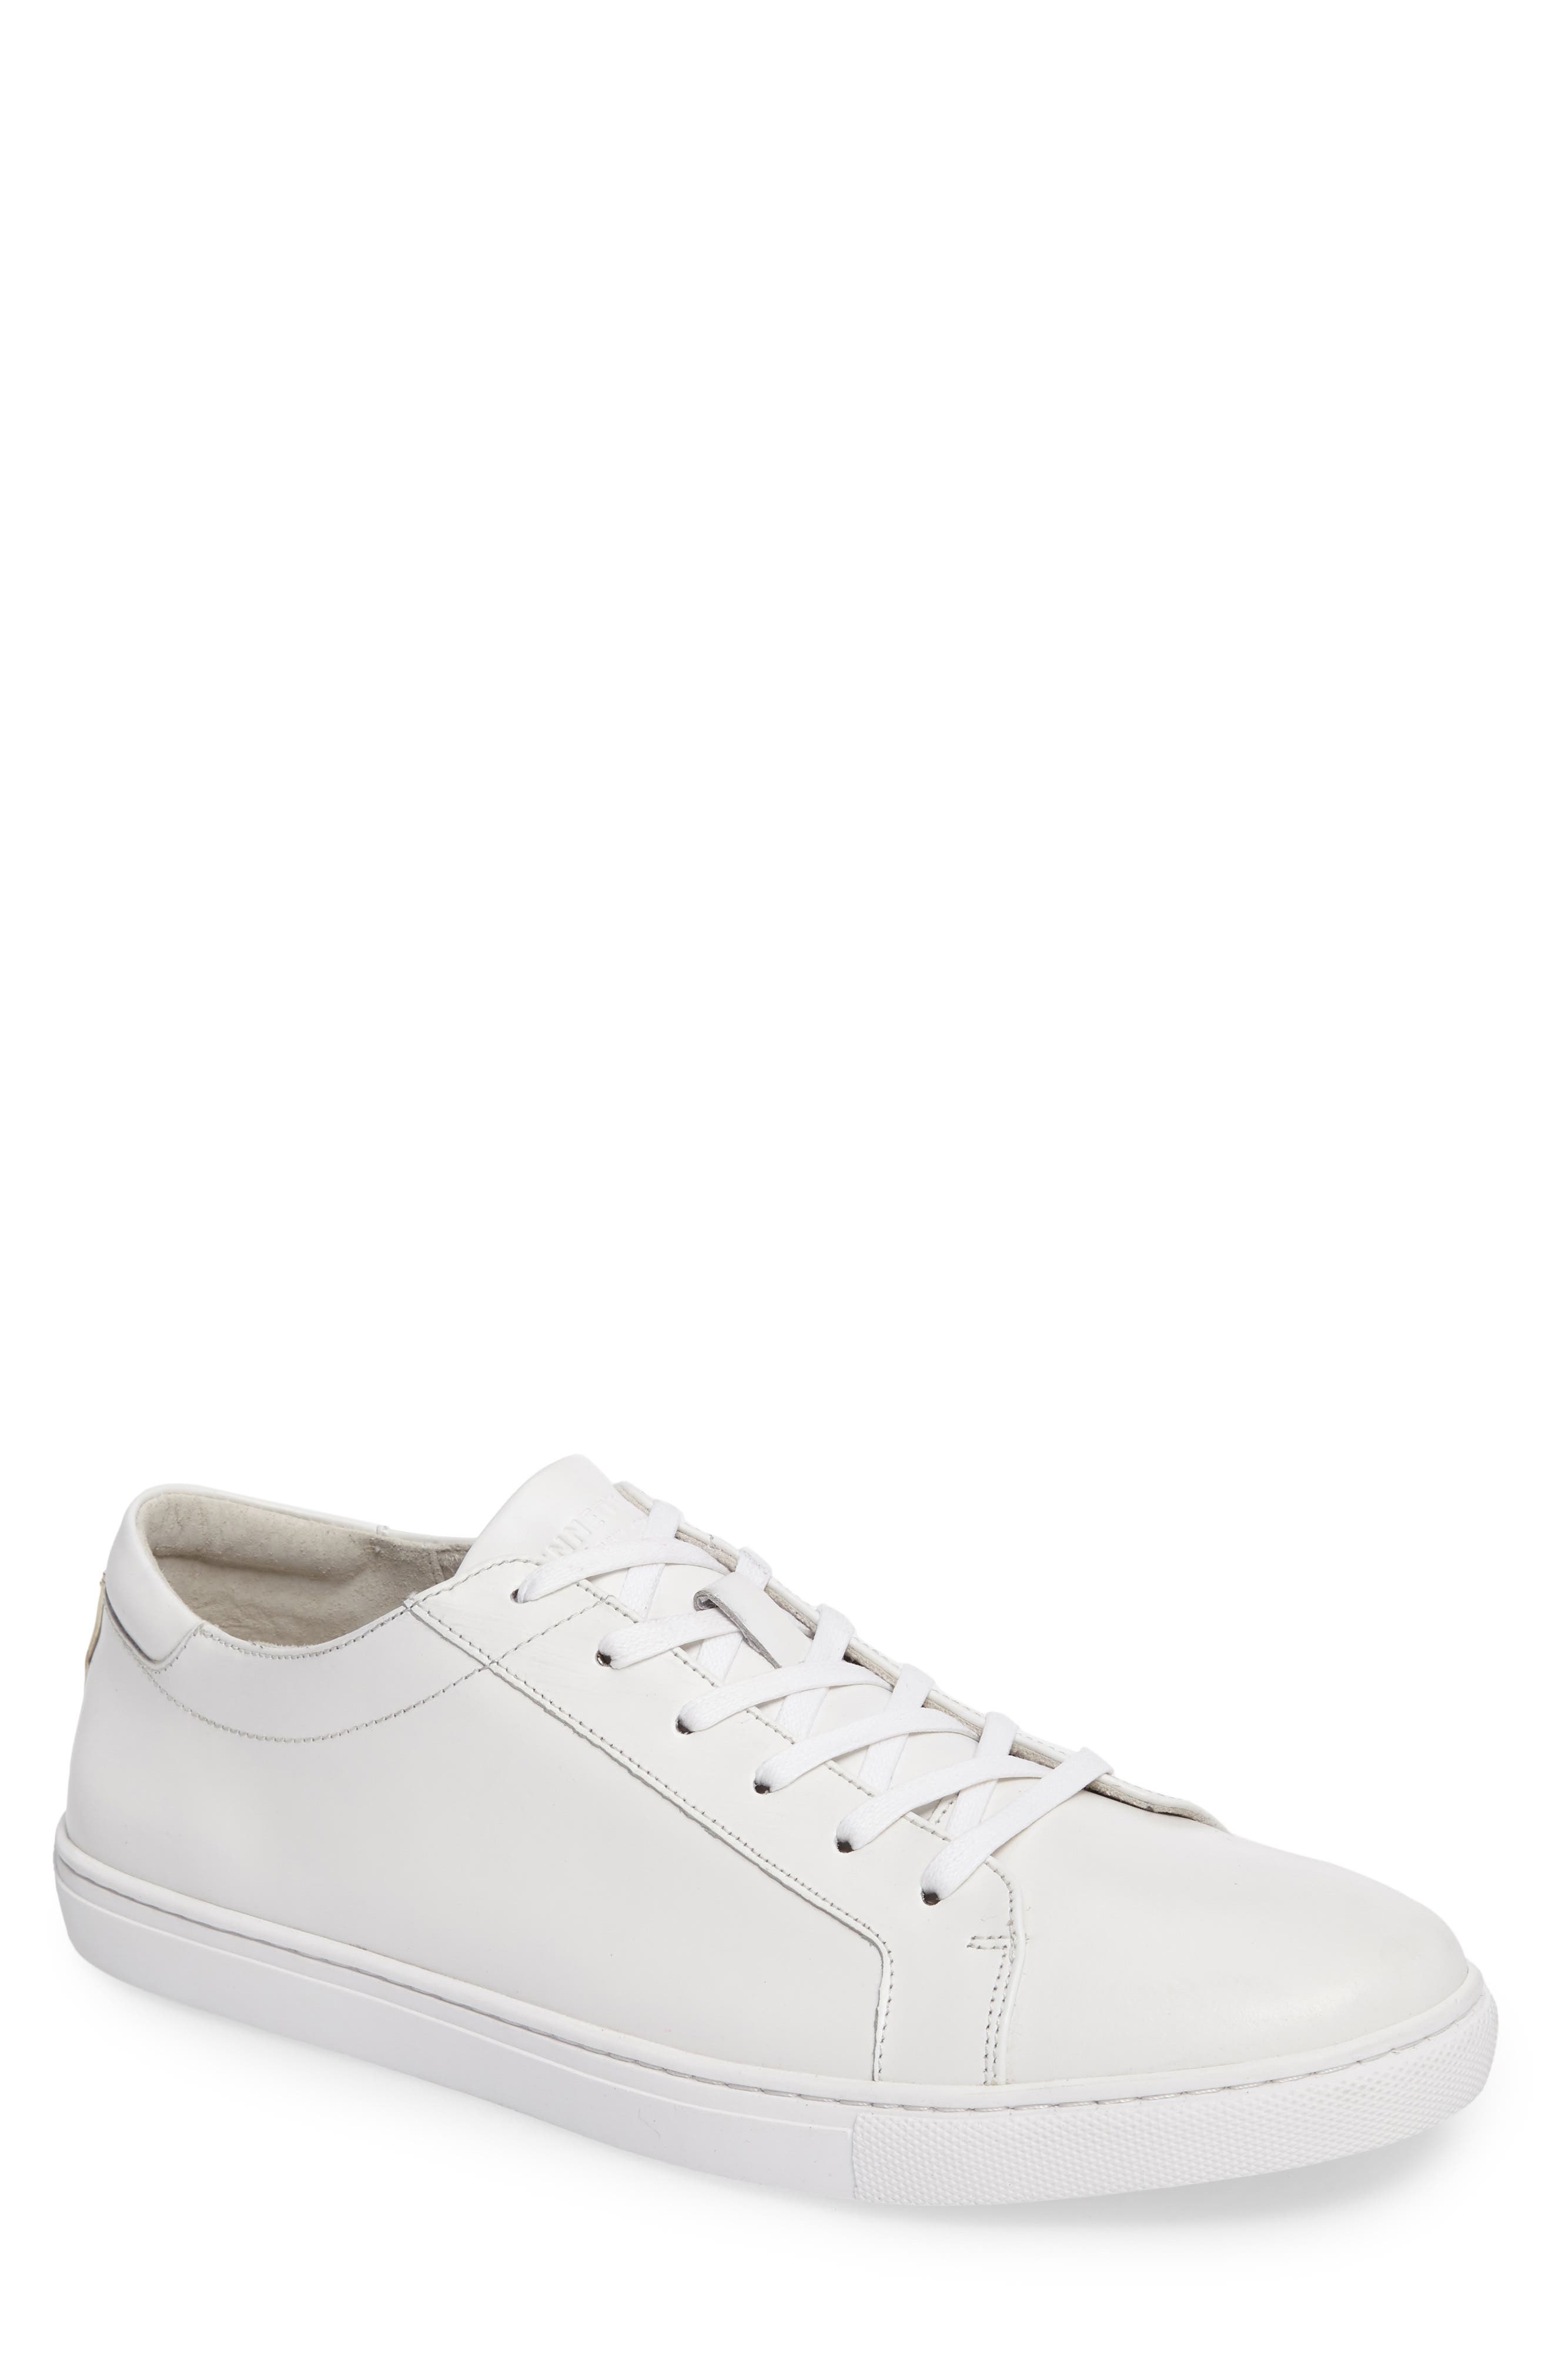 Kenneth Cole New York Kam Sneaker (Men)